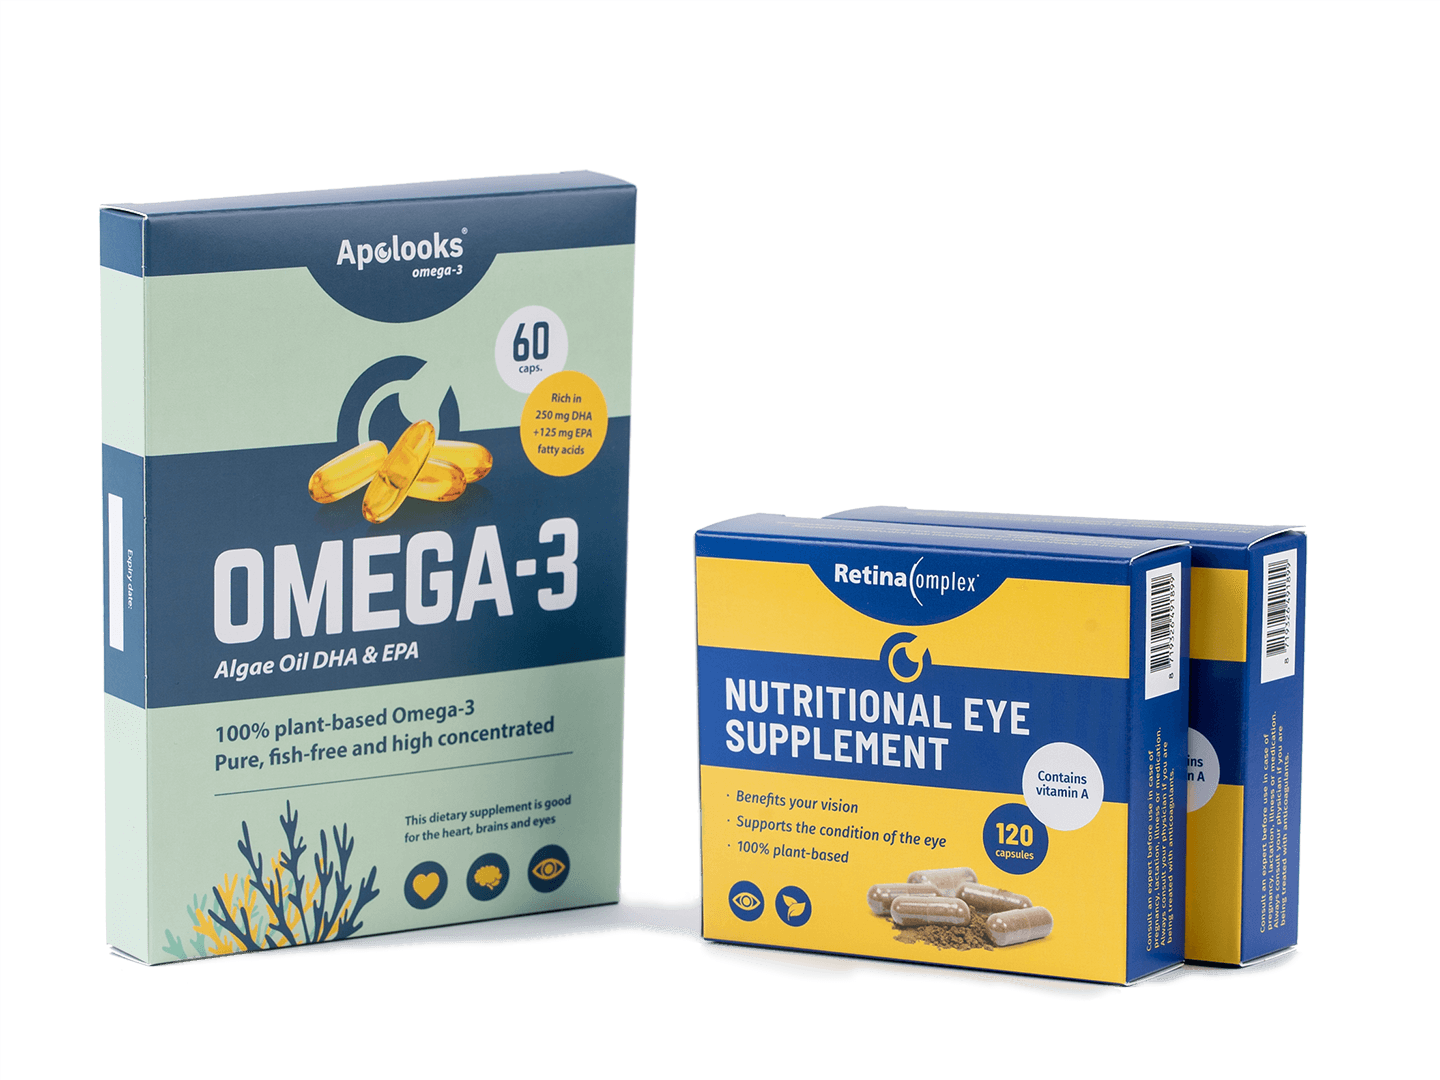 Bundle Discounts - Retinacomplex® & Apolooks® Omega-3 Algae oil